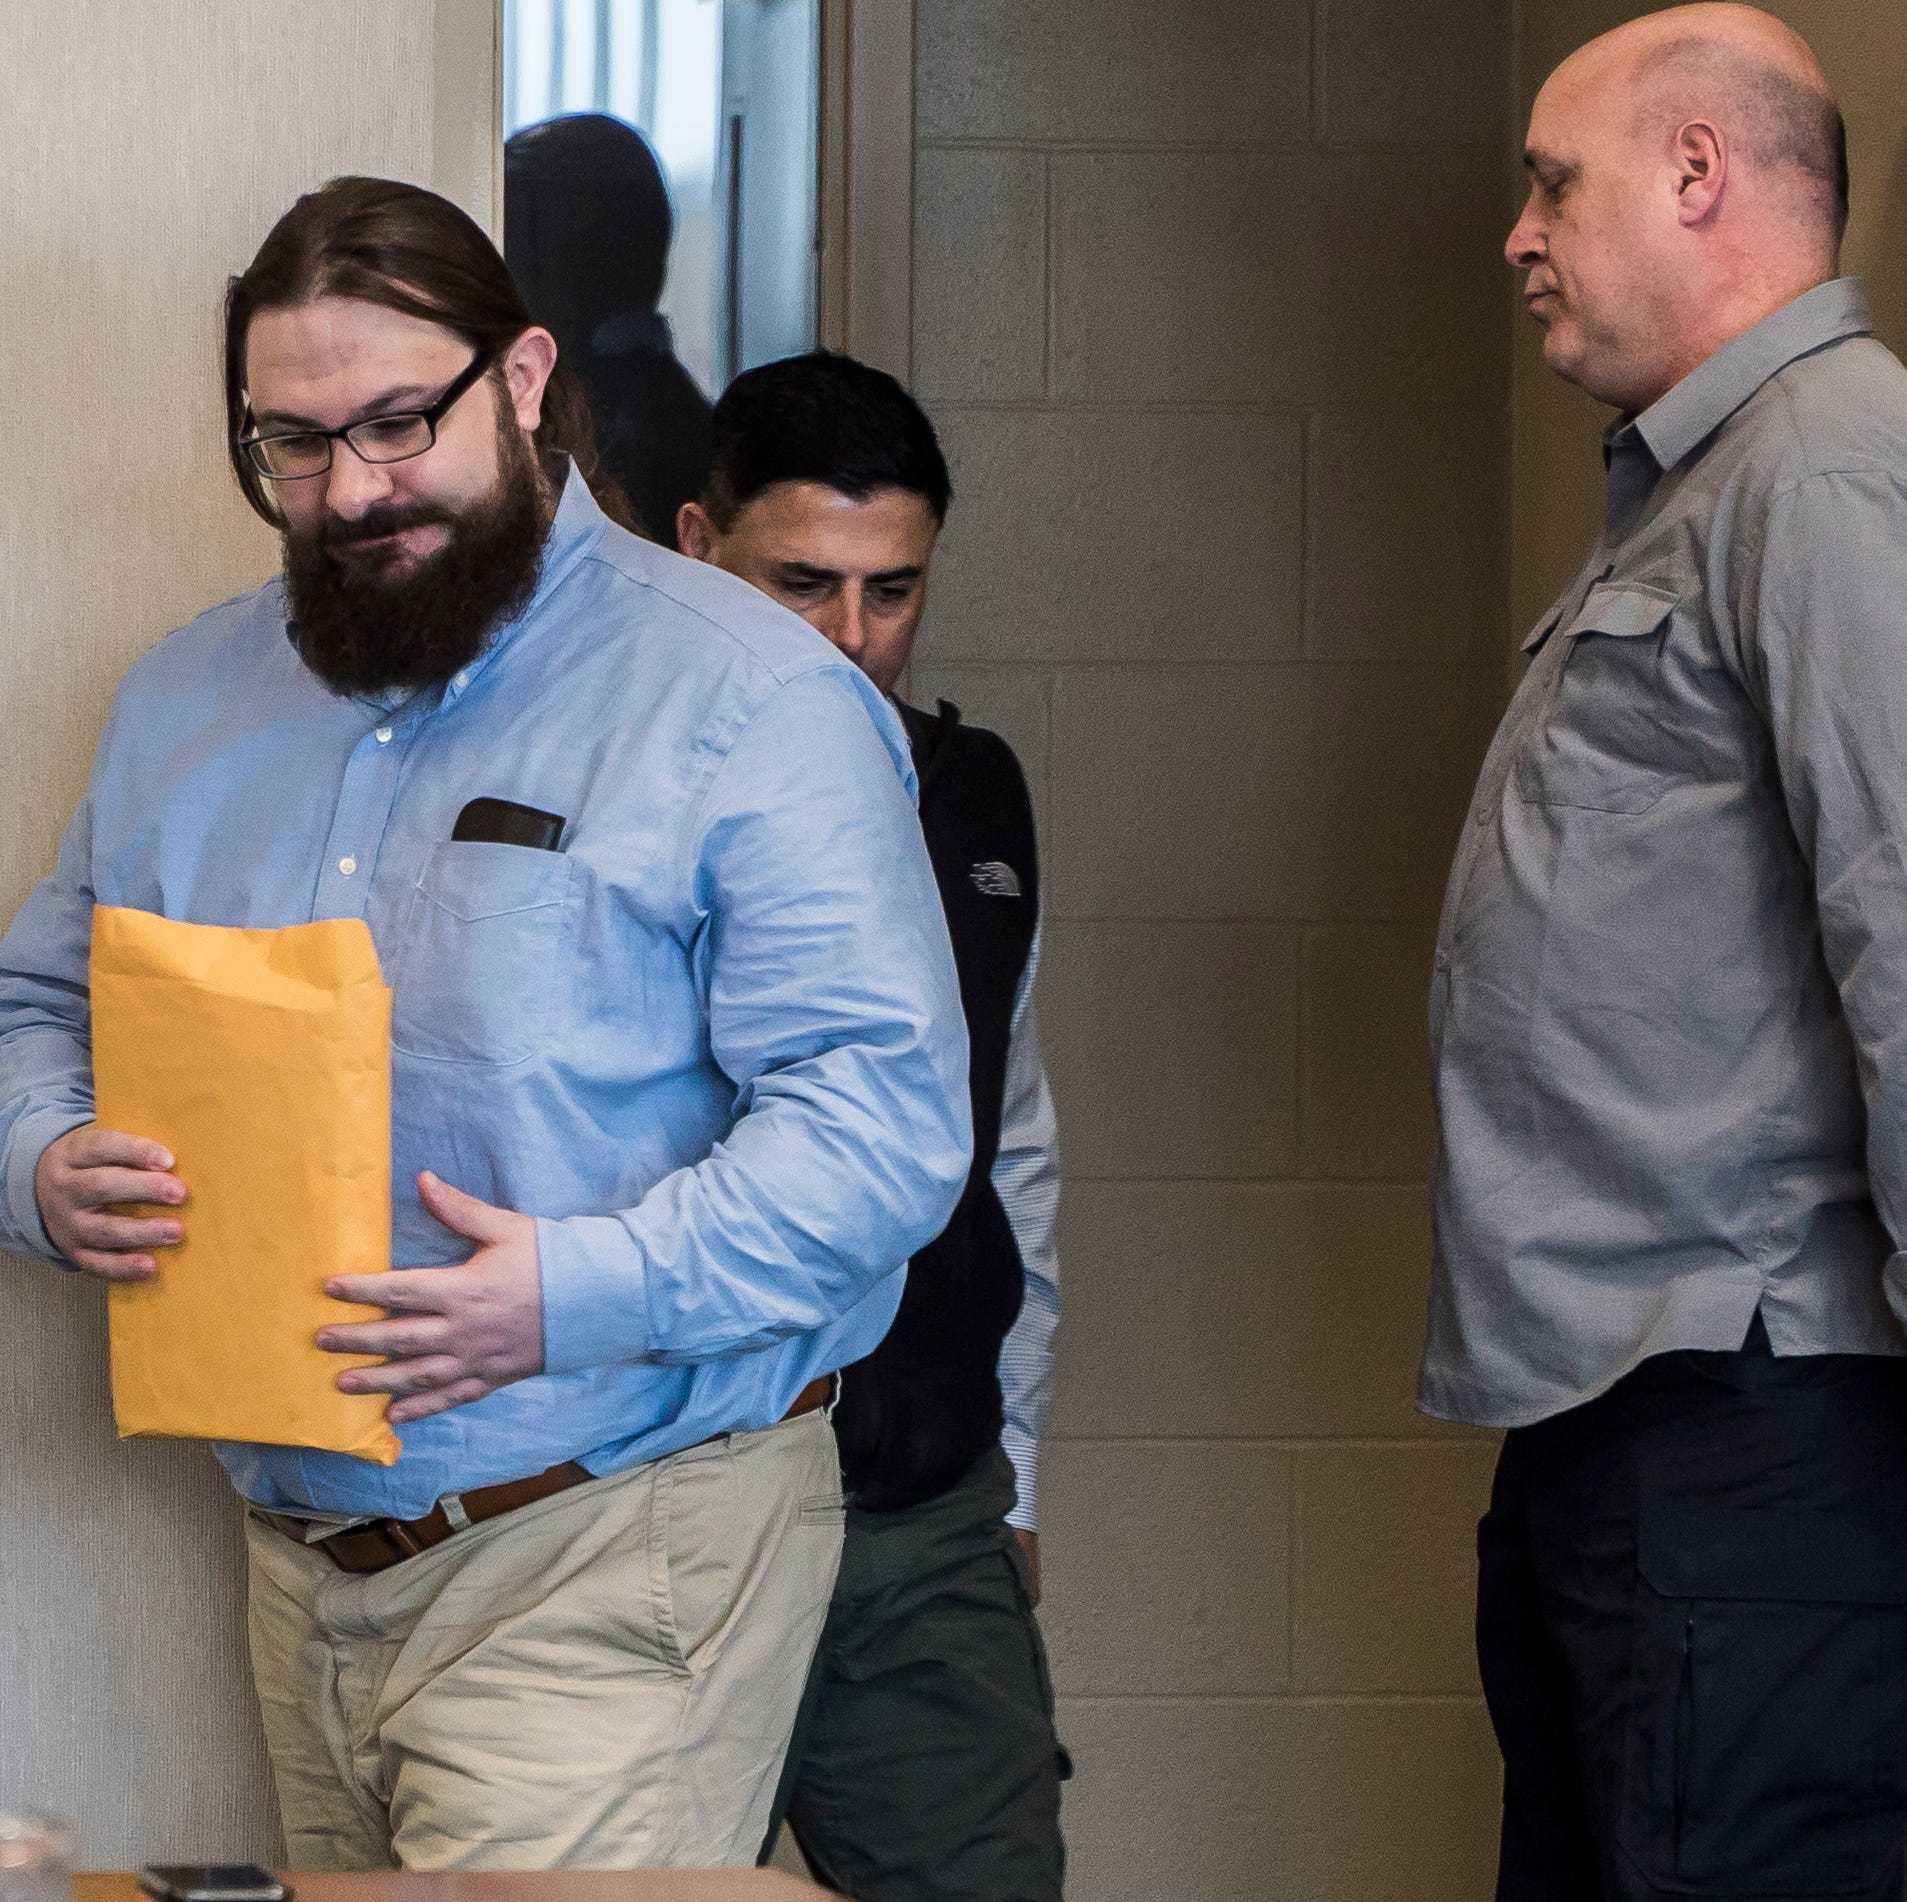 Steven Bourgoin found guilty of second degree murder in wrong-way crash that killed 5 teens